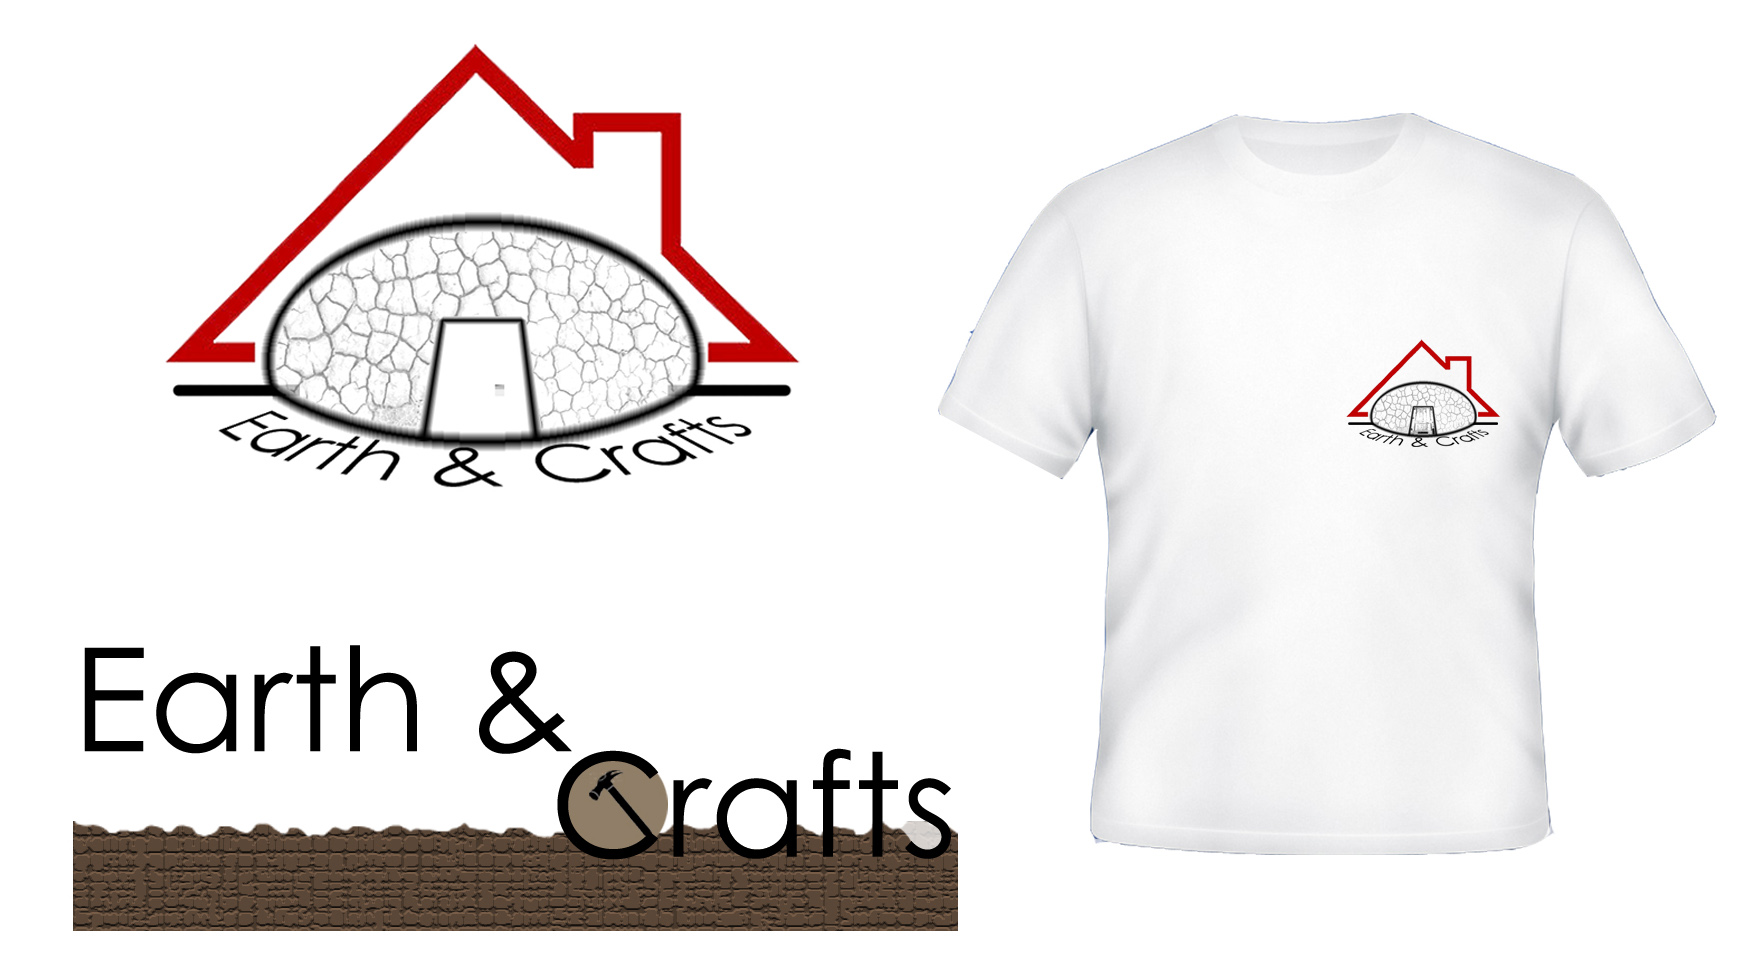 25 predlog logo EARTH&CRAFTS dusan stasevic dulesta@hotmail.com